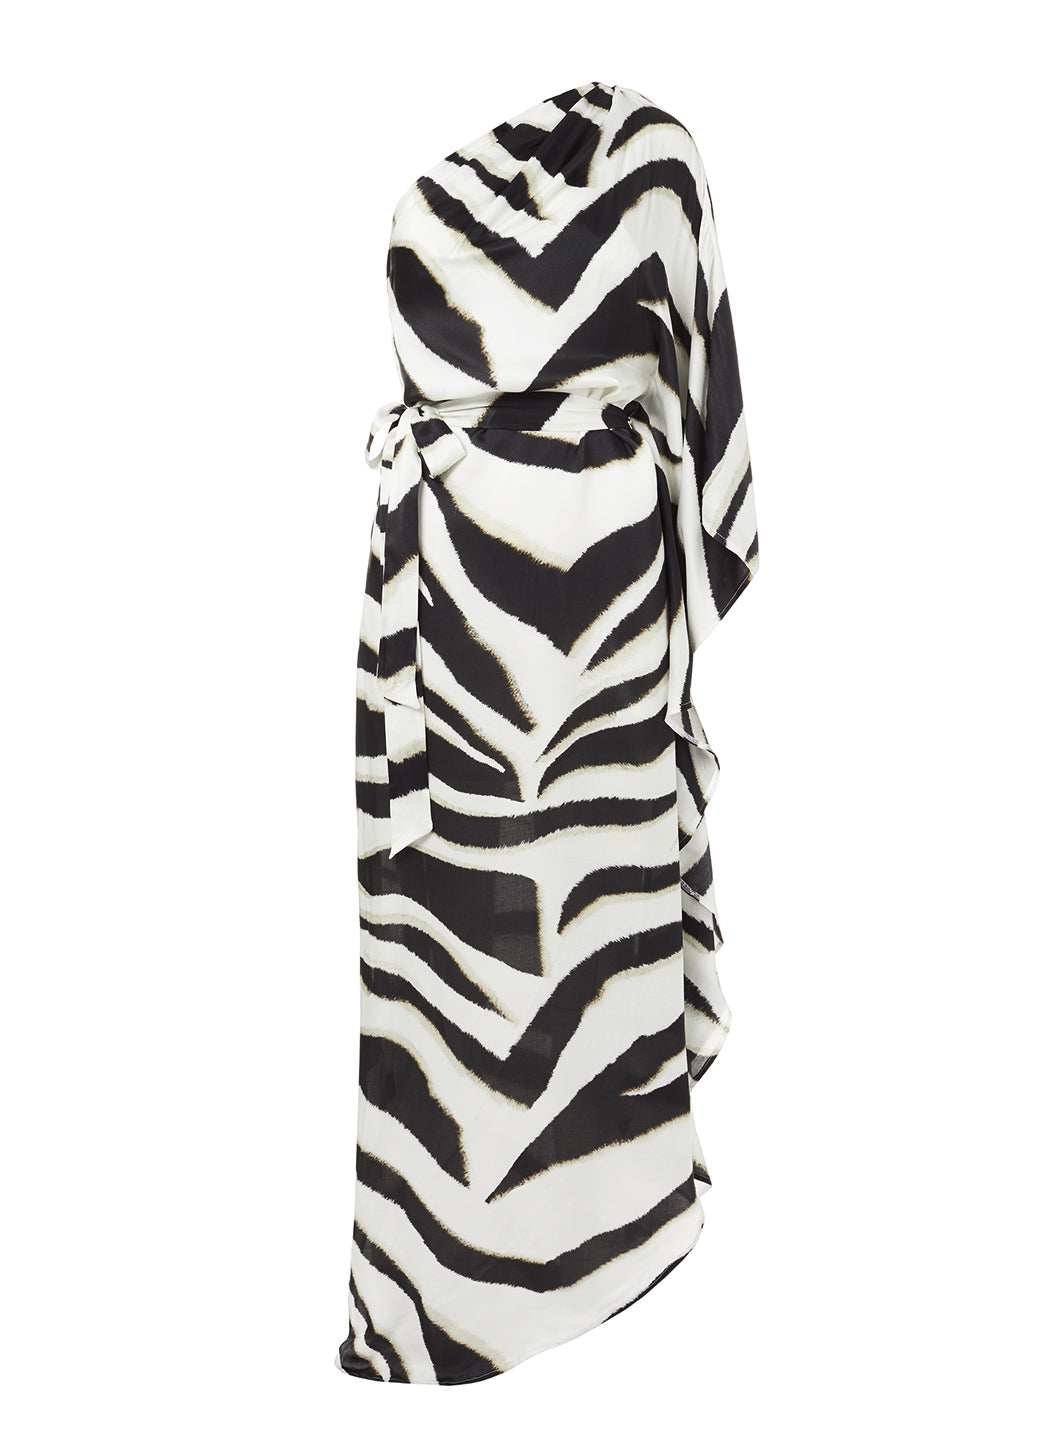 Lauren Zebra One Shoulder Belted Floor Length Dress